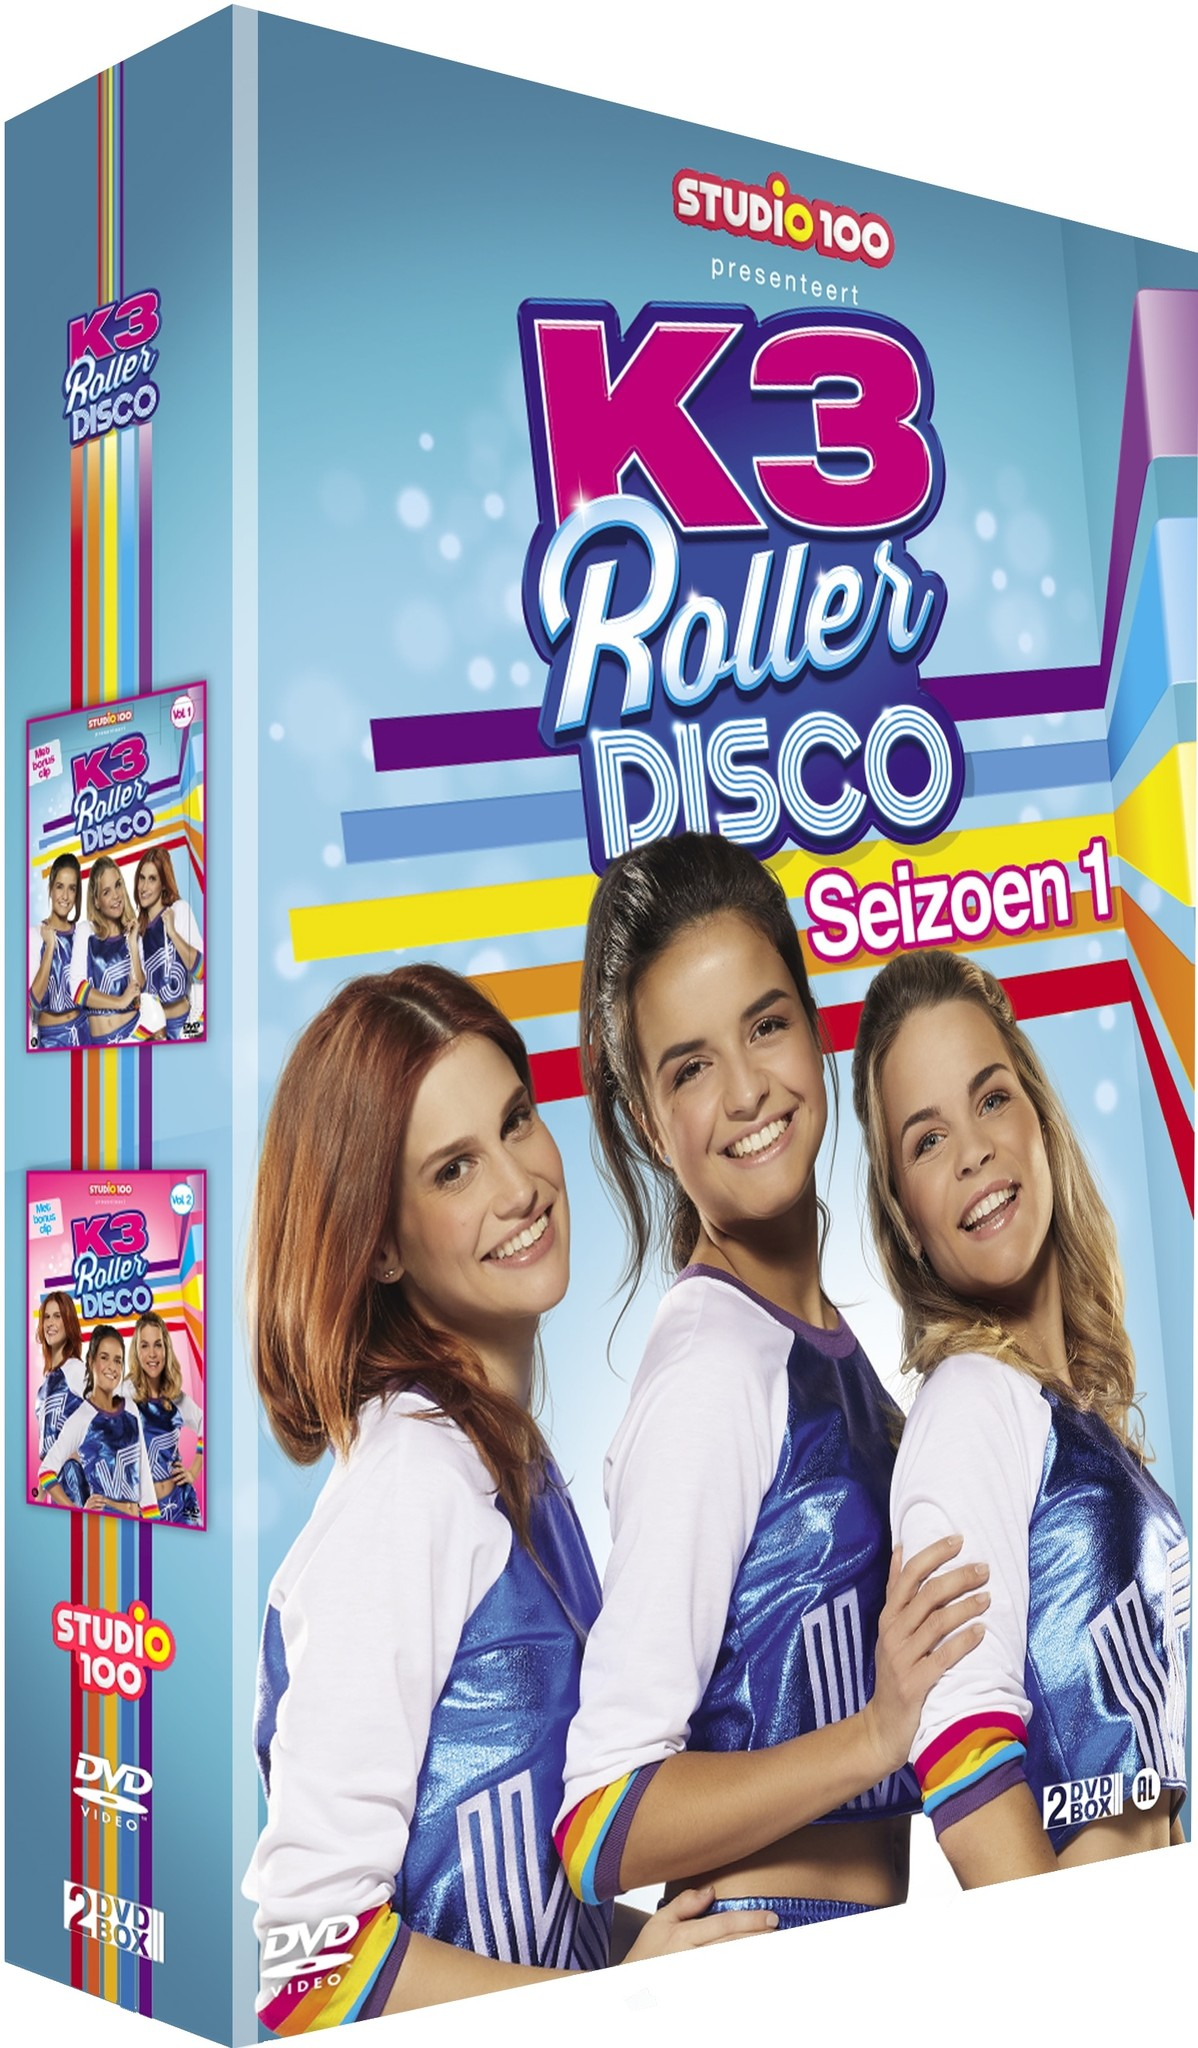 K3 DVD Box: Roller disco - Seizoen 1